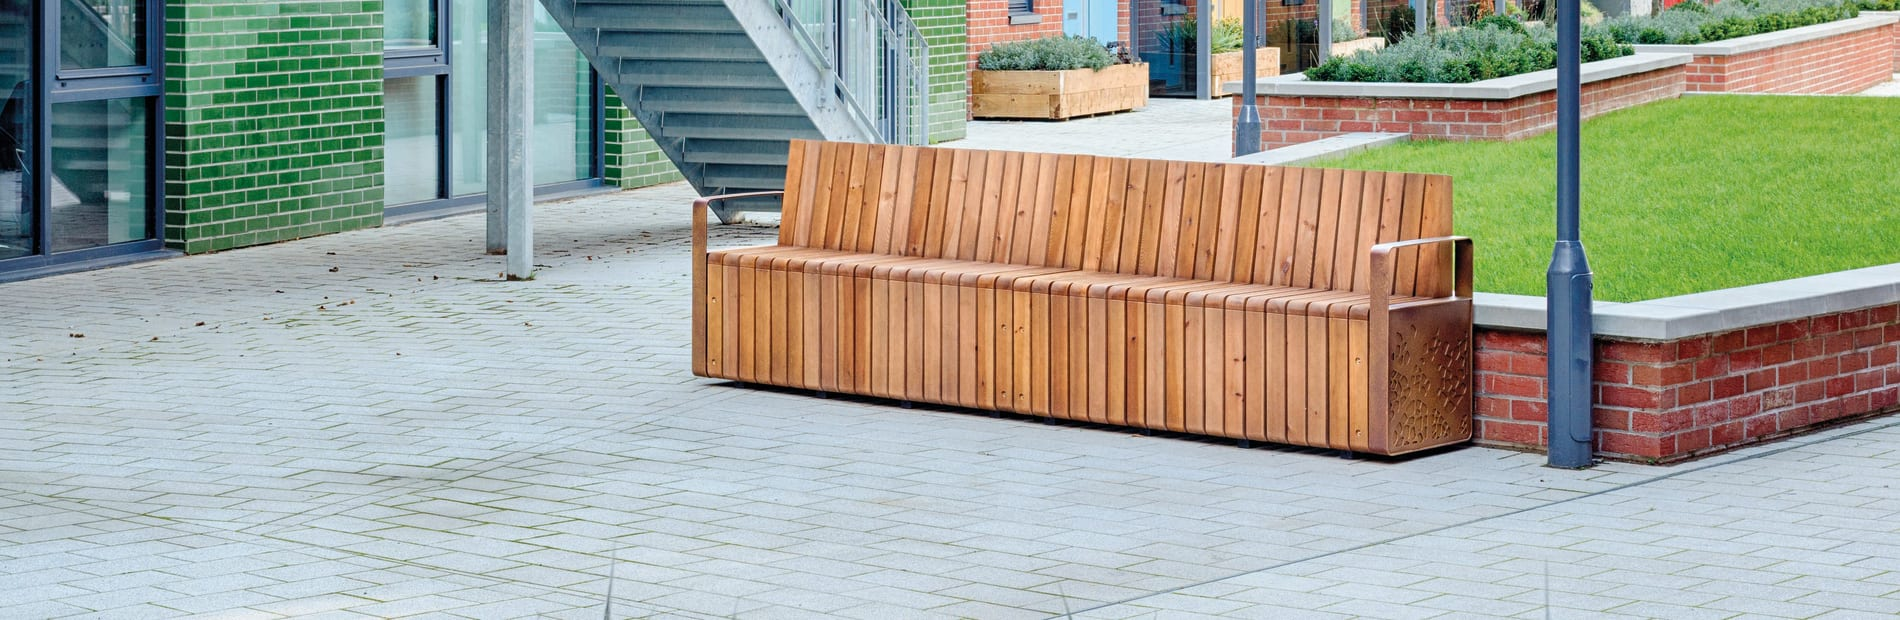 natural elements bench